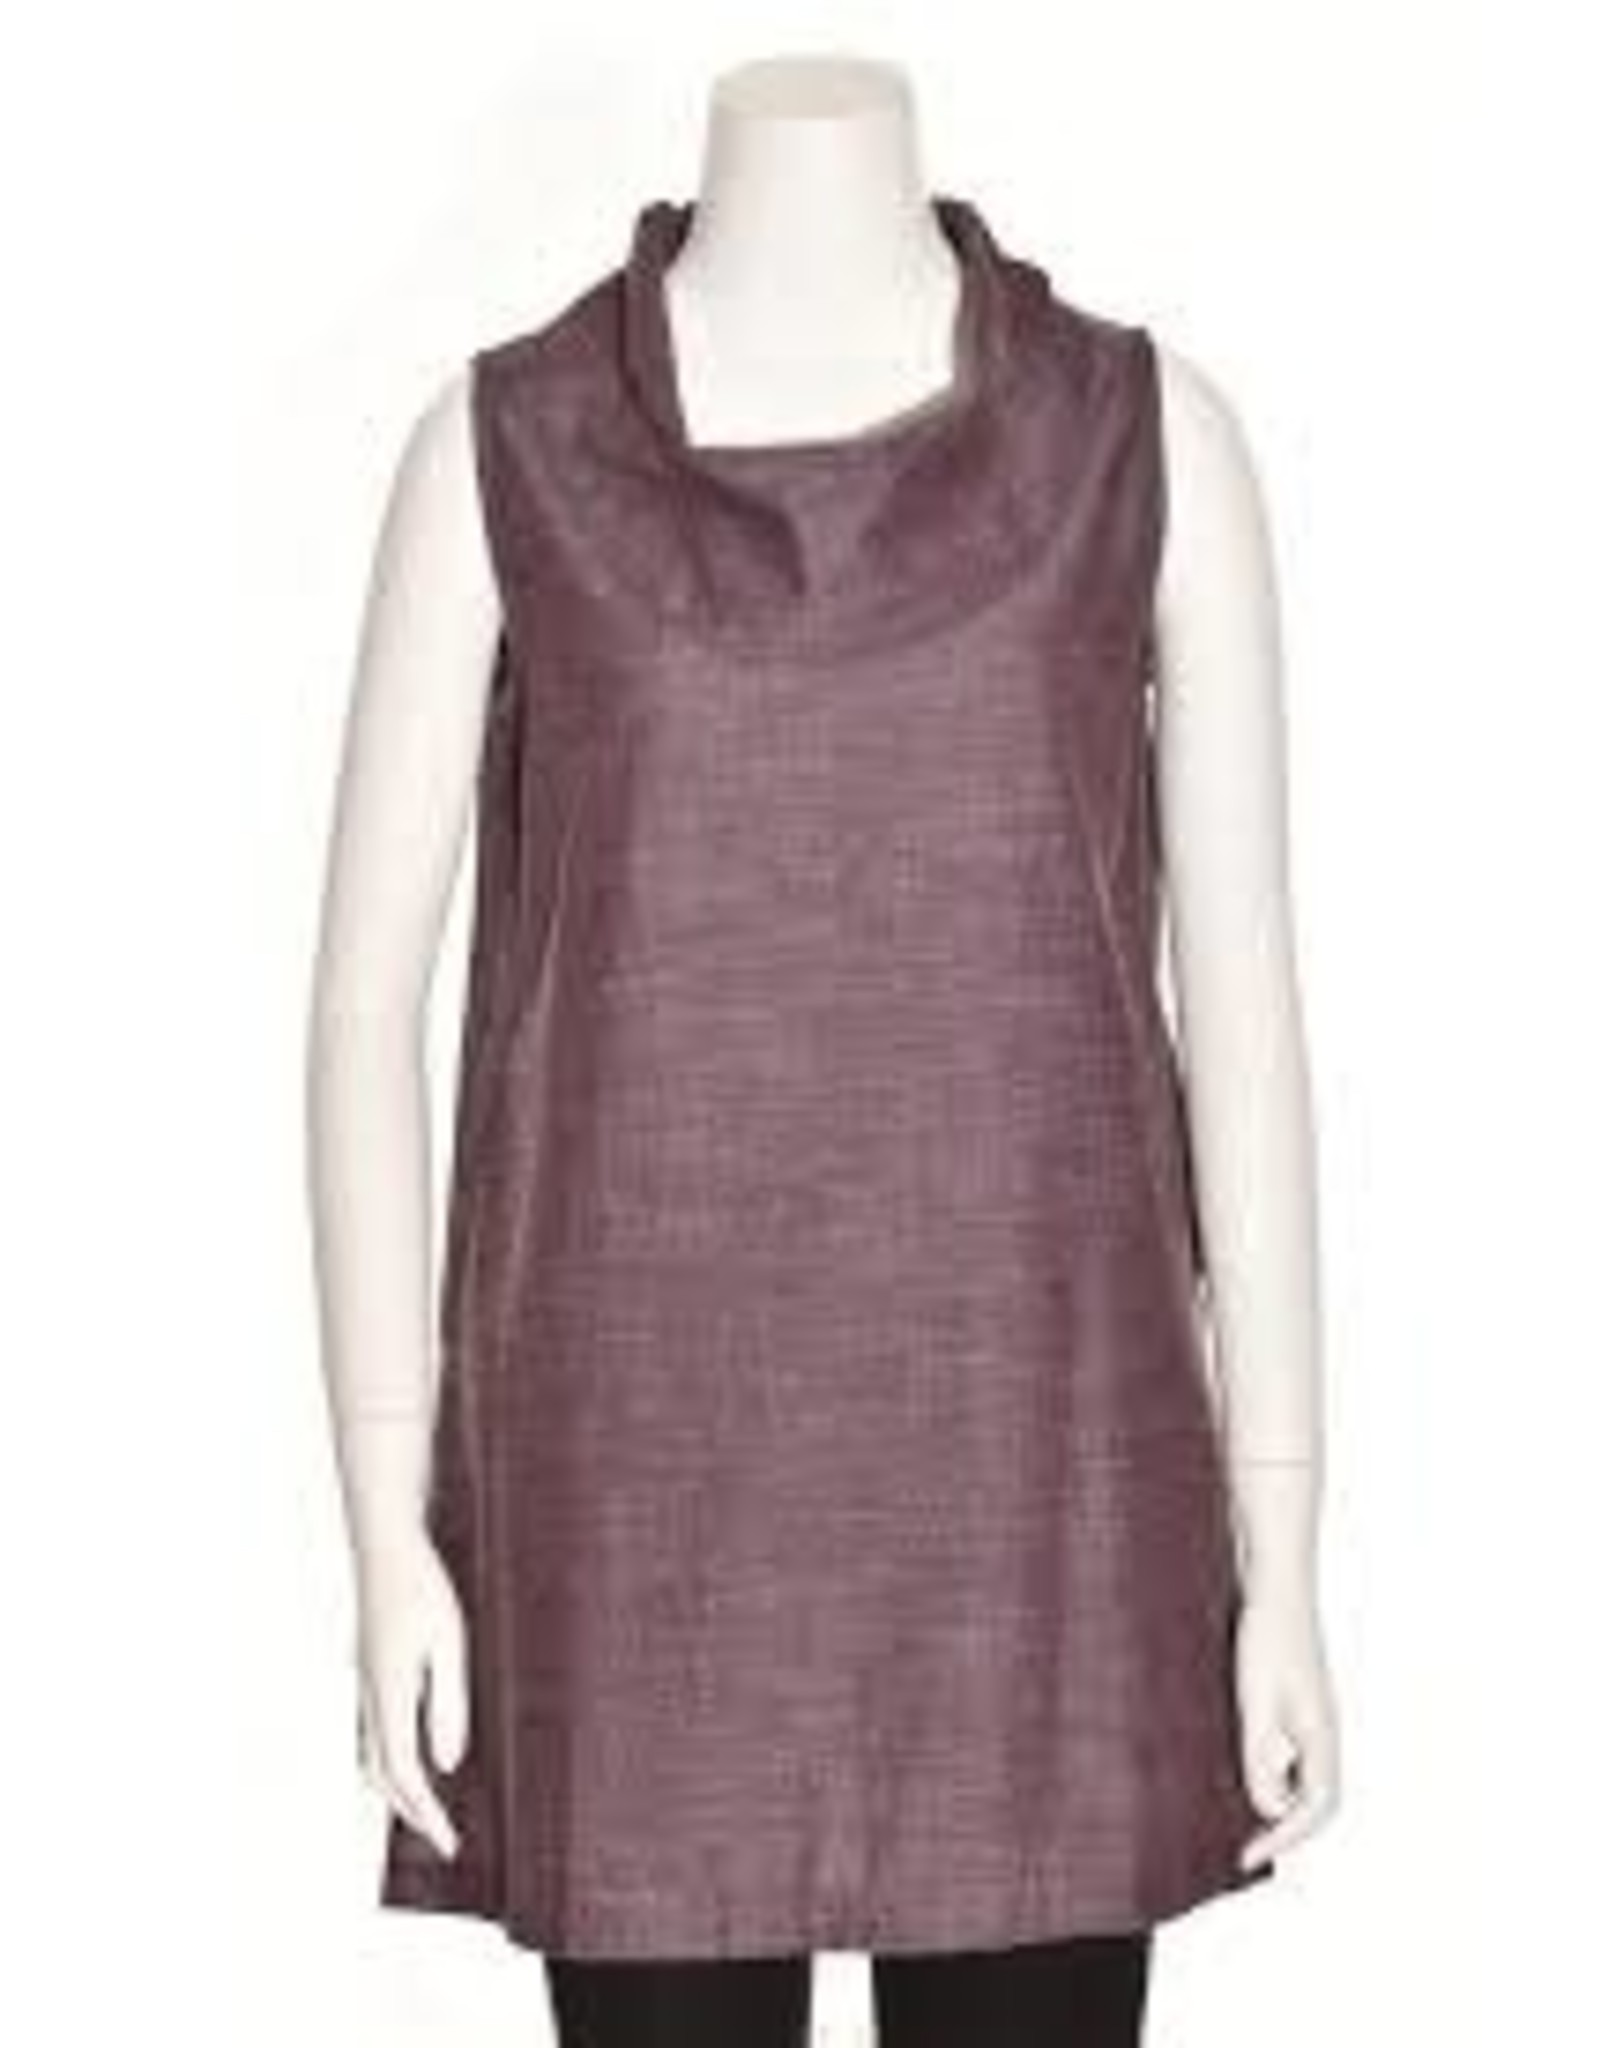 Organic Cotton Cowl Tunic Dress, India Aubergine (purple) S